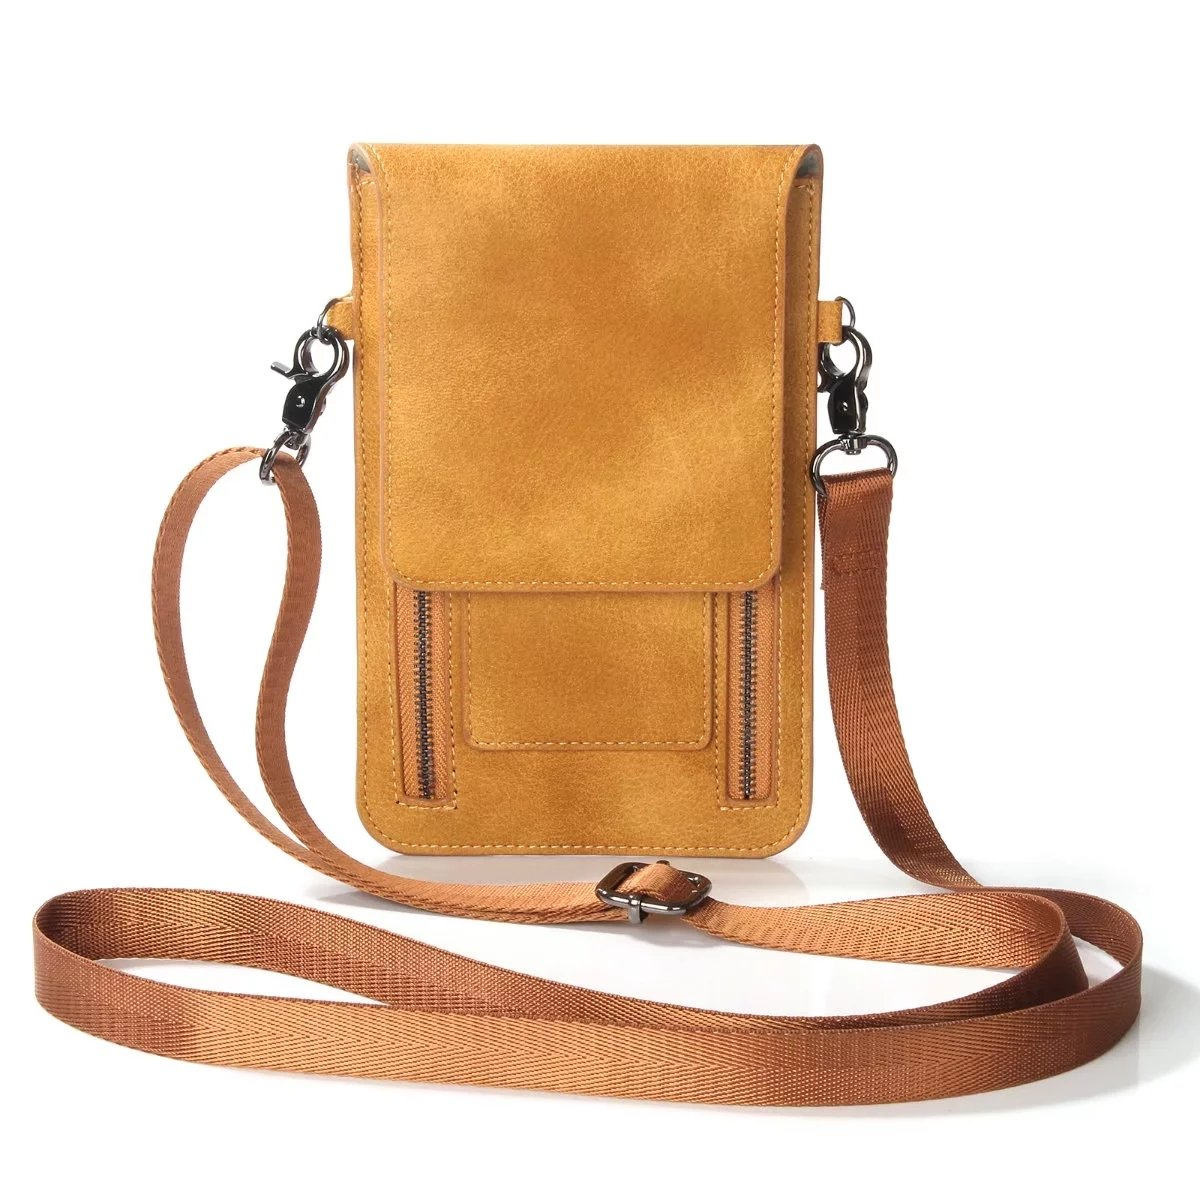 ATOOZ Luxury PU Leather Small Crossbody Bag Wallet Purse Single Shoulder Cellphone Pouch for Women Girls (Brown)